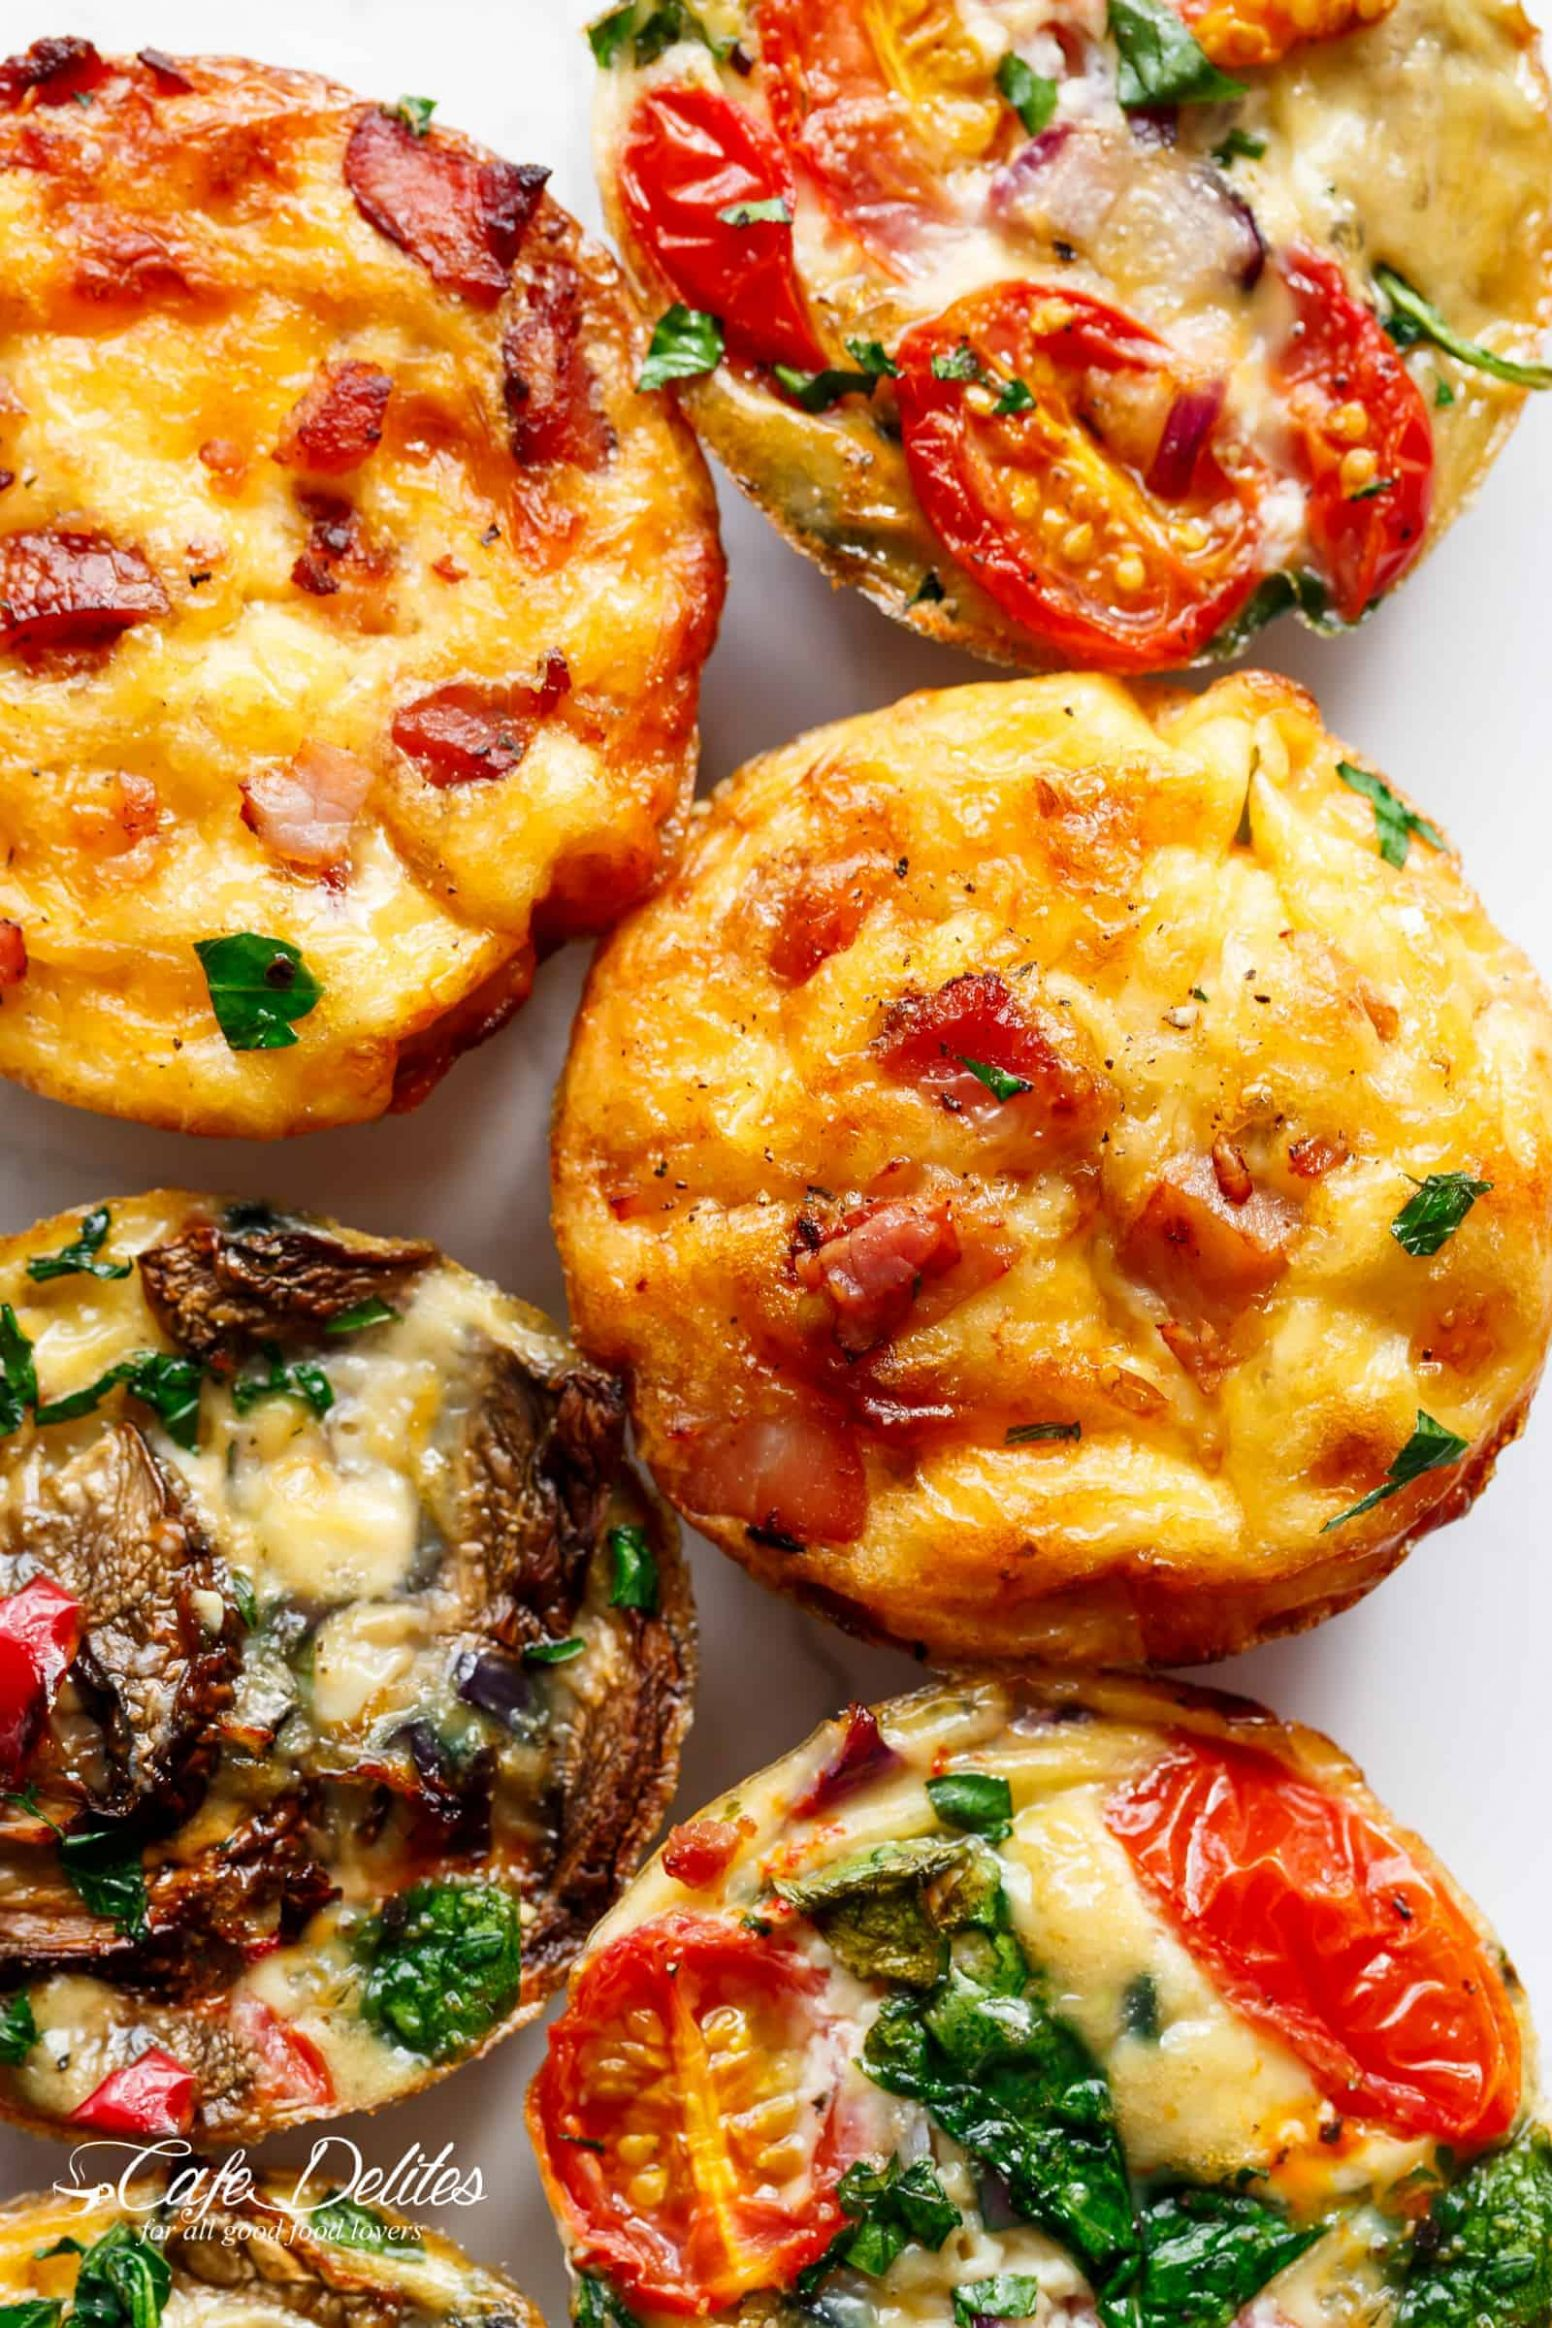 Breakfast Egg Muffins 8 Ways - Recipe Egg Muffins Healthy